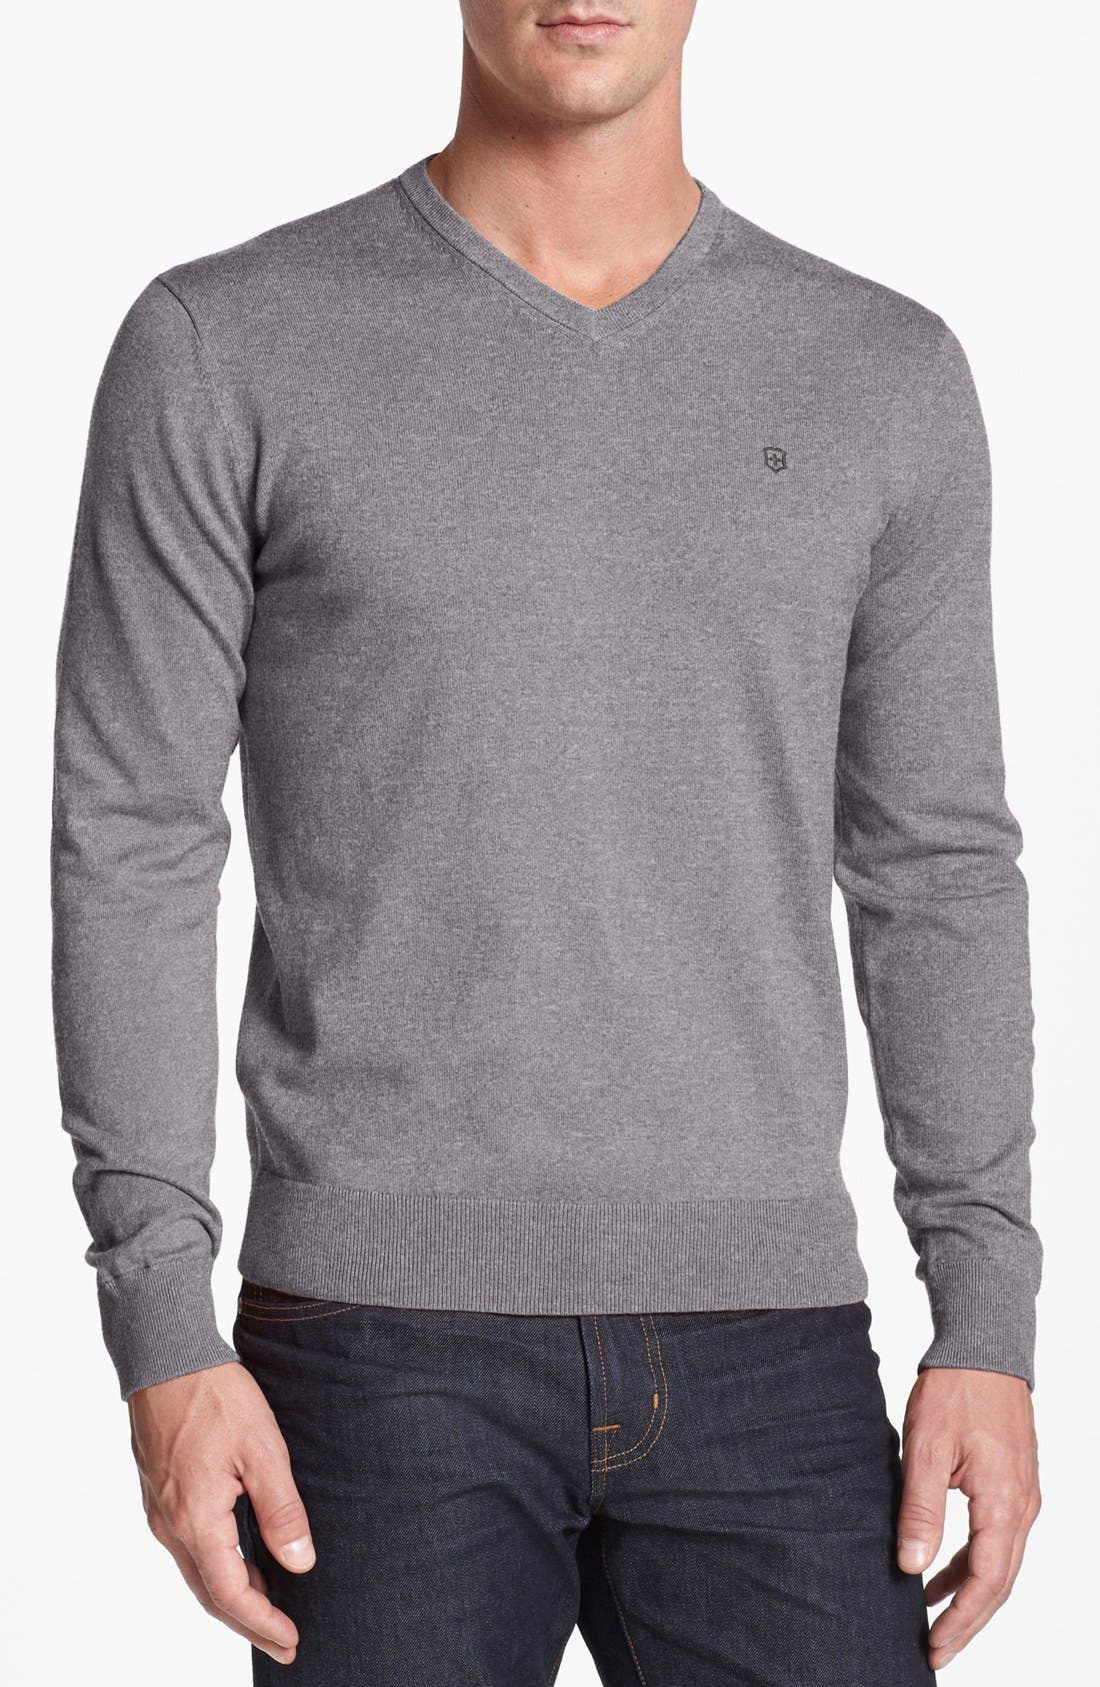 Main Image - Victorinox Swiss Army® 'Signature' Tailored Fit V-Neck Sweater (Online Only)